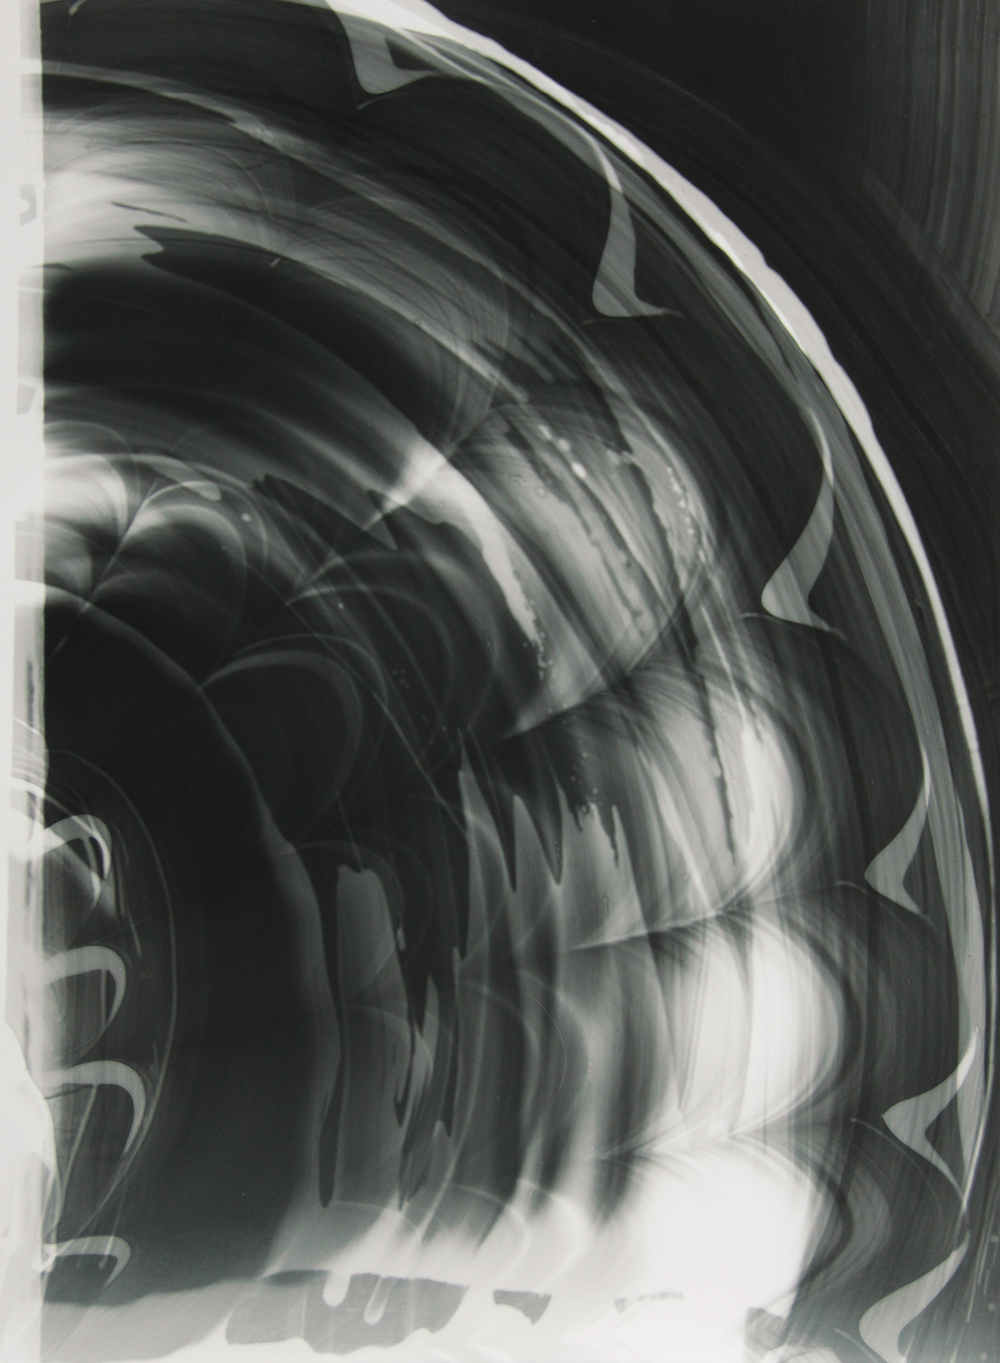 Blind Light 25, unique photogram 2015